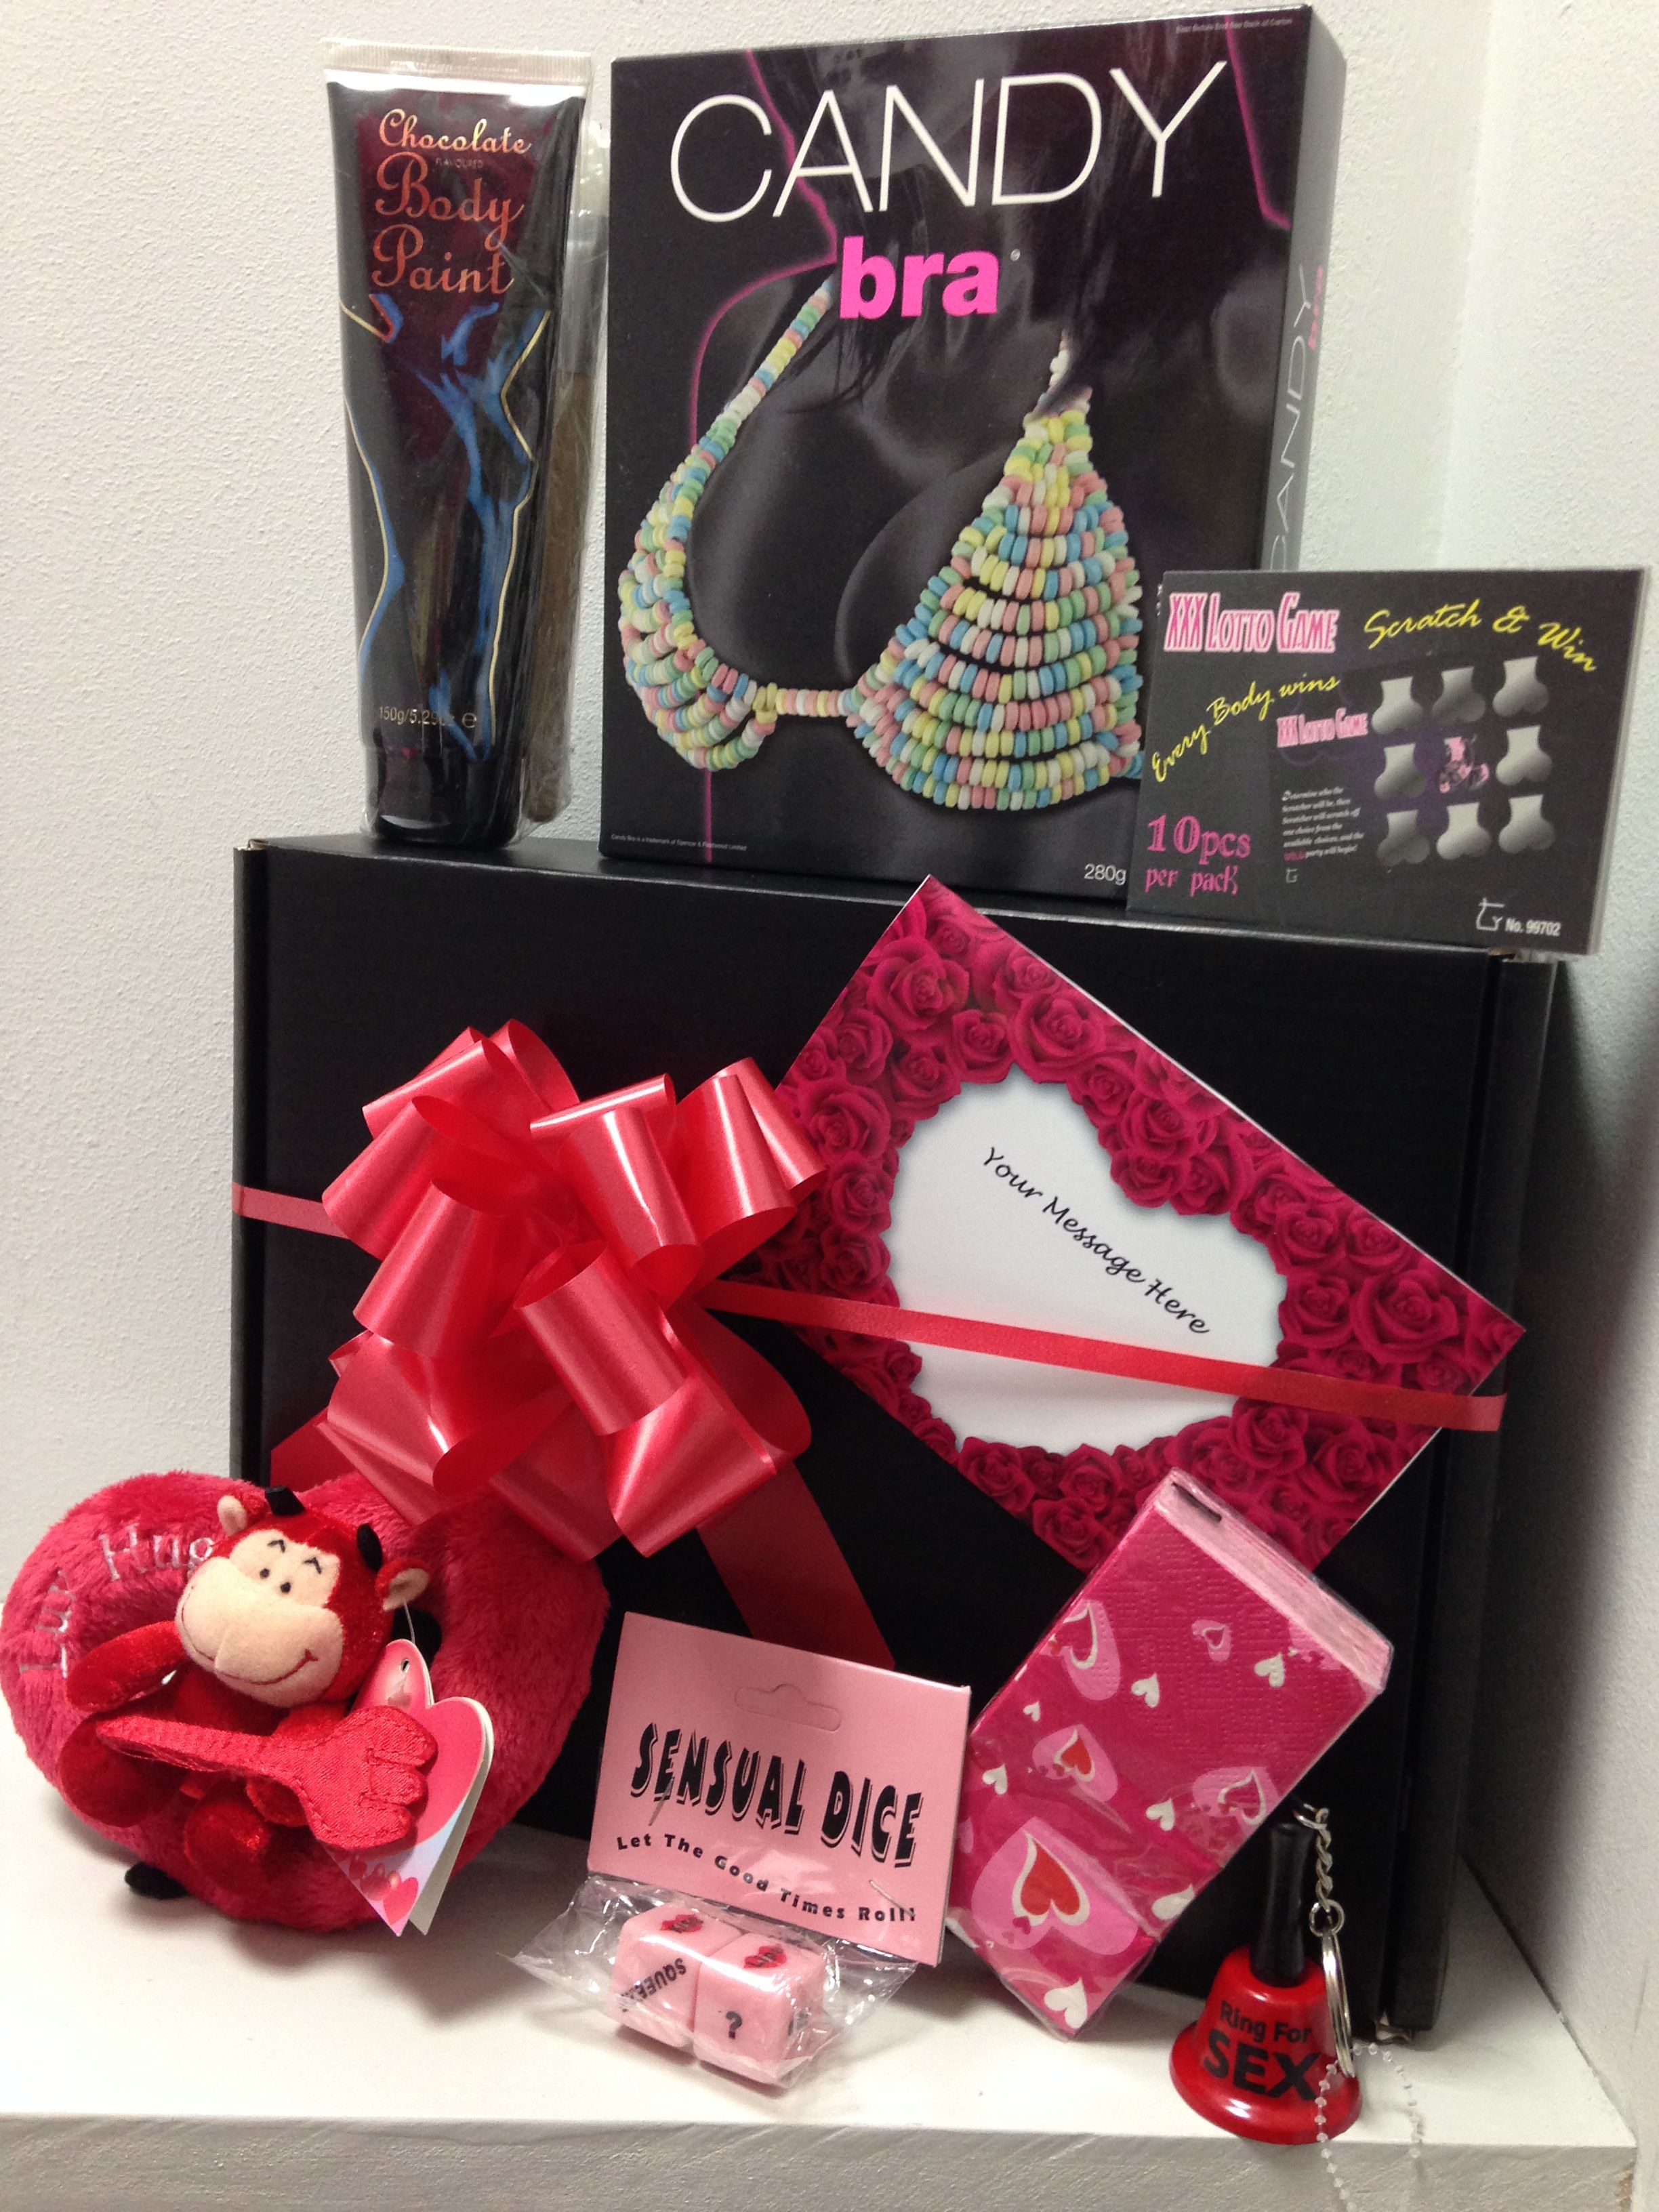 Sexy gift basket ideas for women